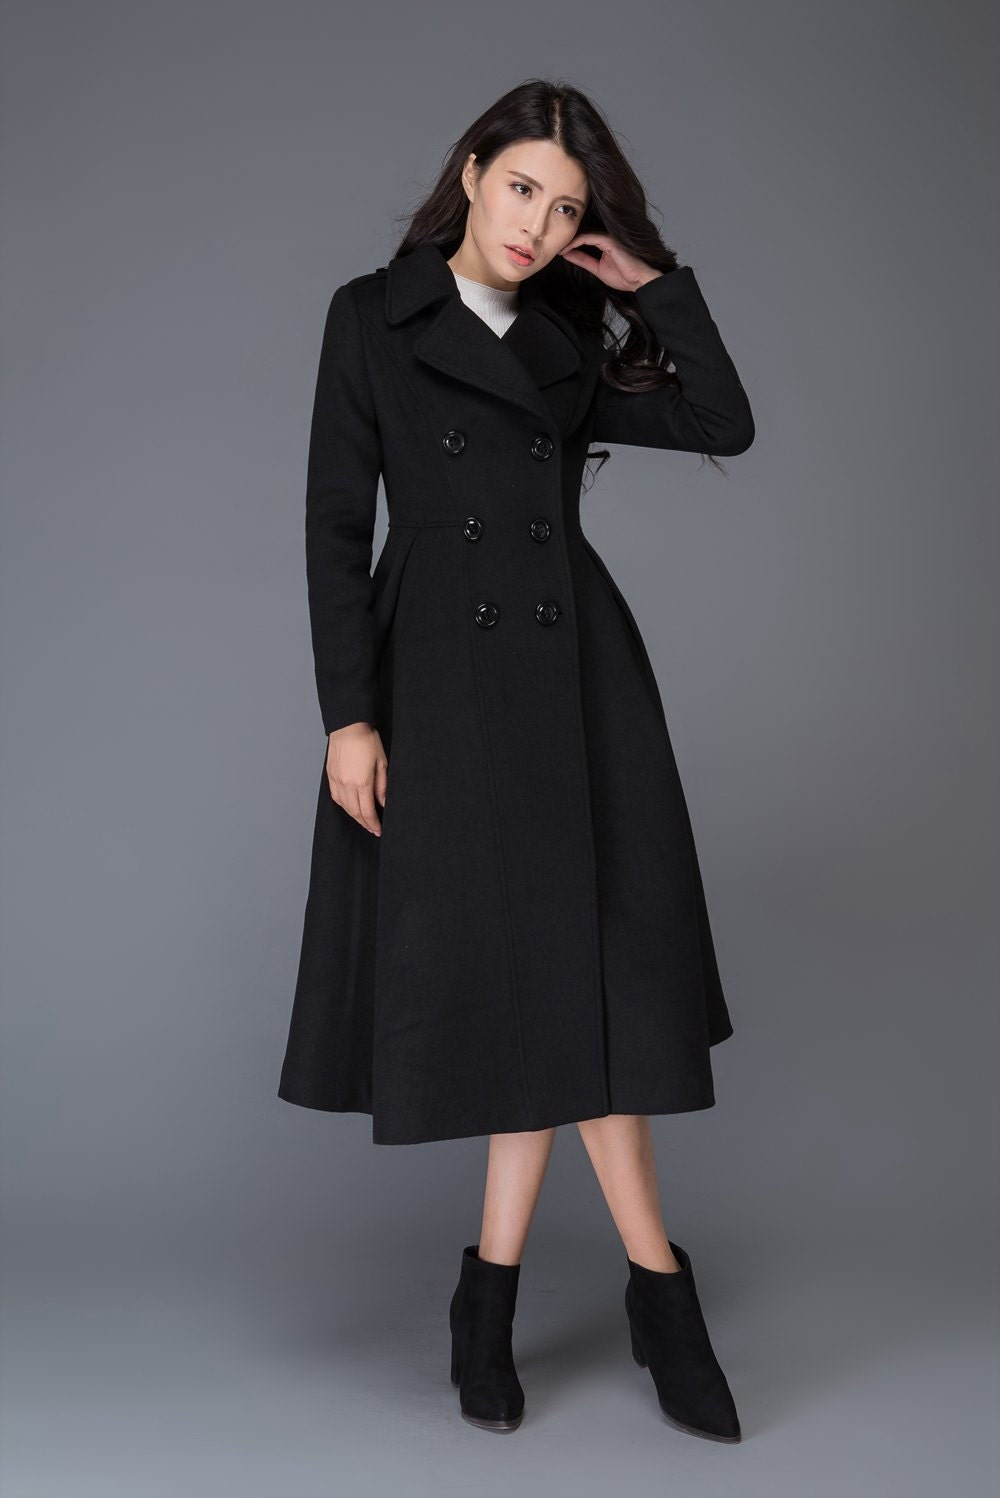 Shop the latest styles of Womens Long Black Coats at Macys. Check out our designer collection of chic coats including peacoats, trench coats, puffer coats and more! Macy's Presents: The Edit- A curated mix of fashion and inspiration Check It Out. Womens Winter Coats;.